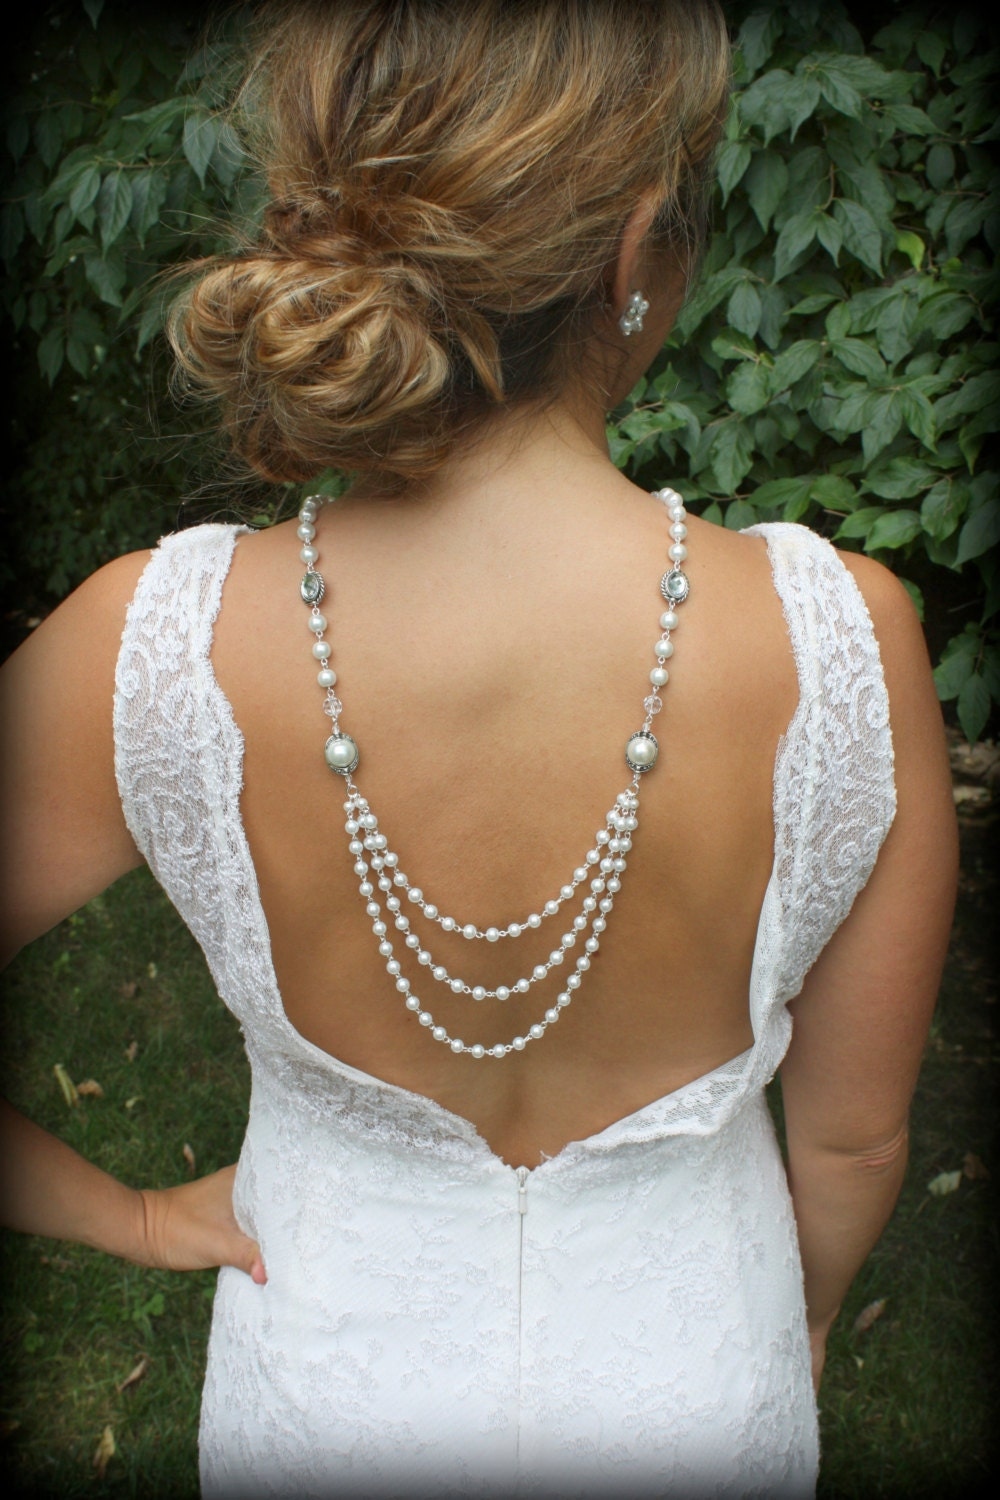 Necklace pearl necklace back drop necklace bridal back necklace